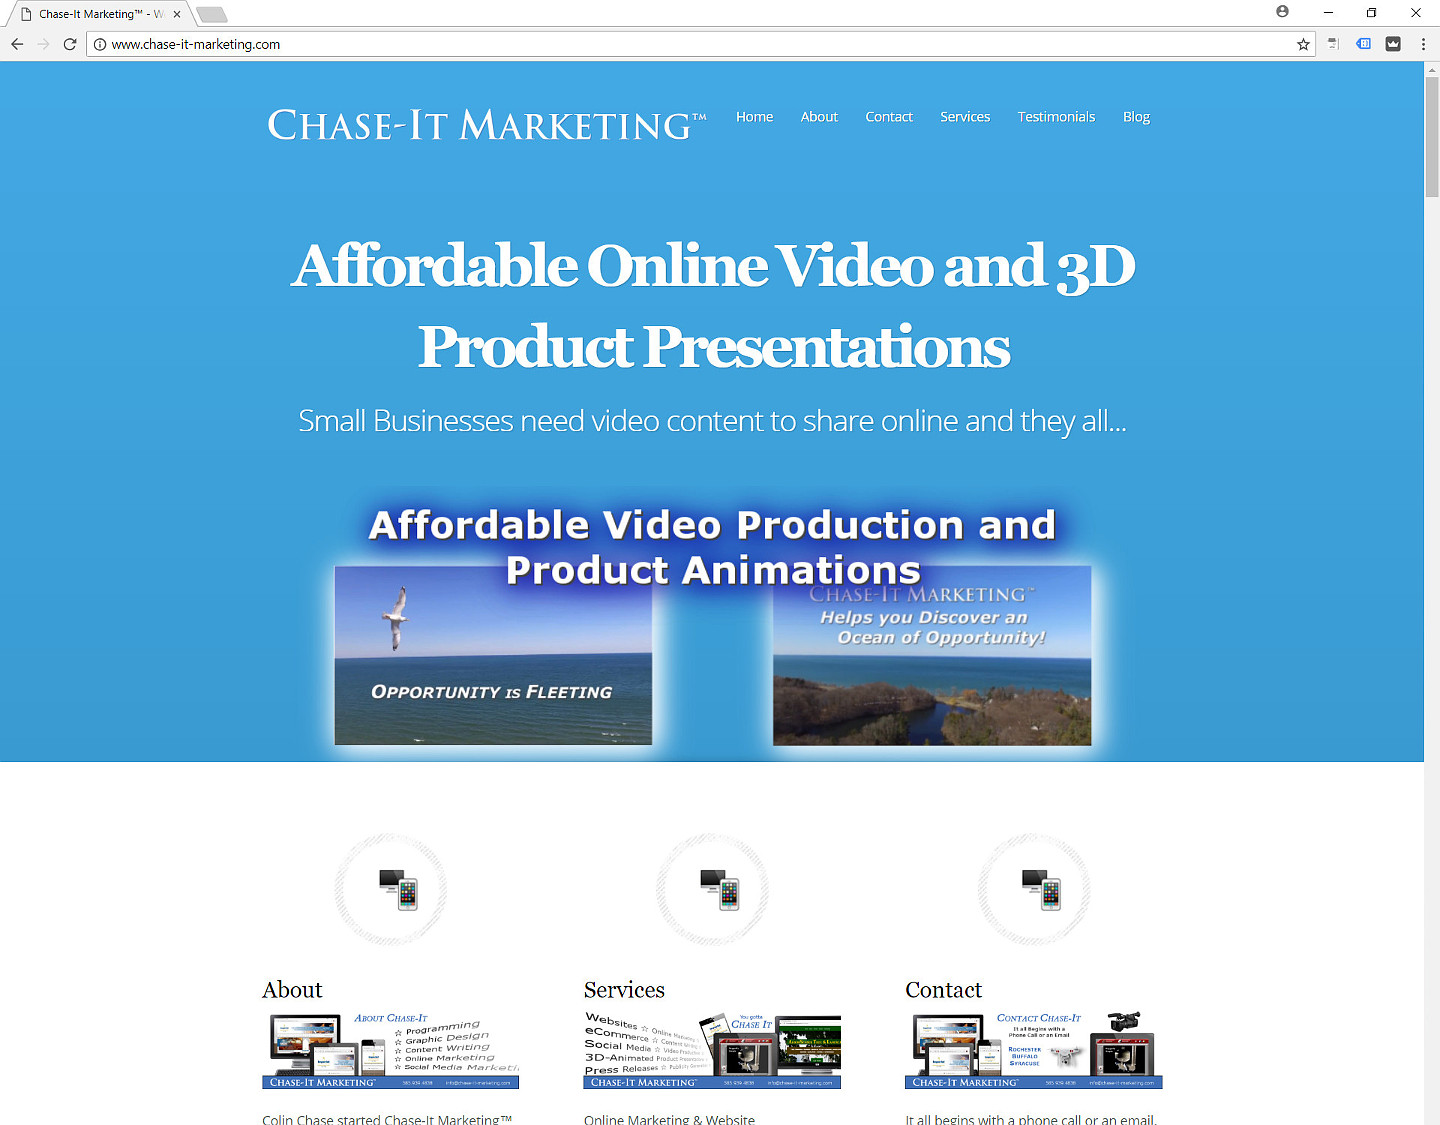 Chase-It Marketing™ Website is fully-responsive - Widescreen Desktop/Laptop view